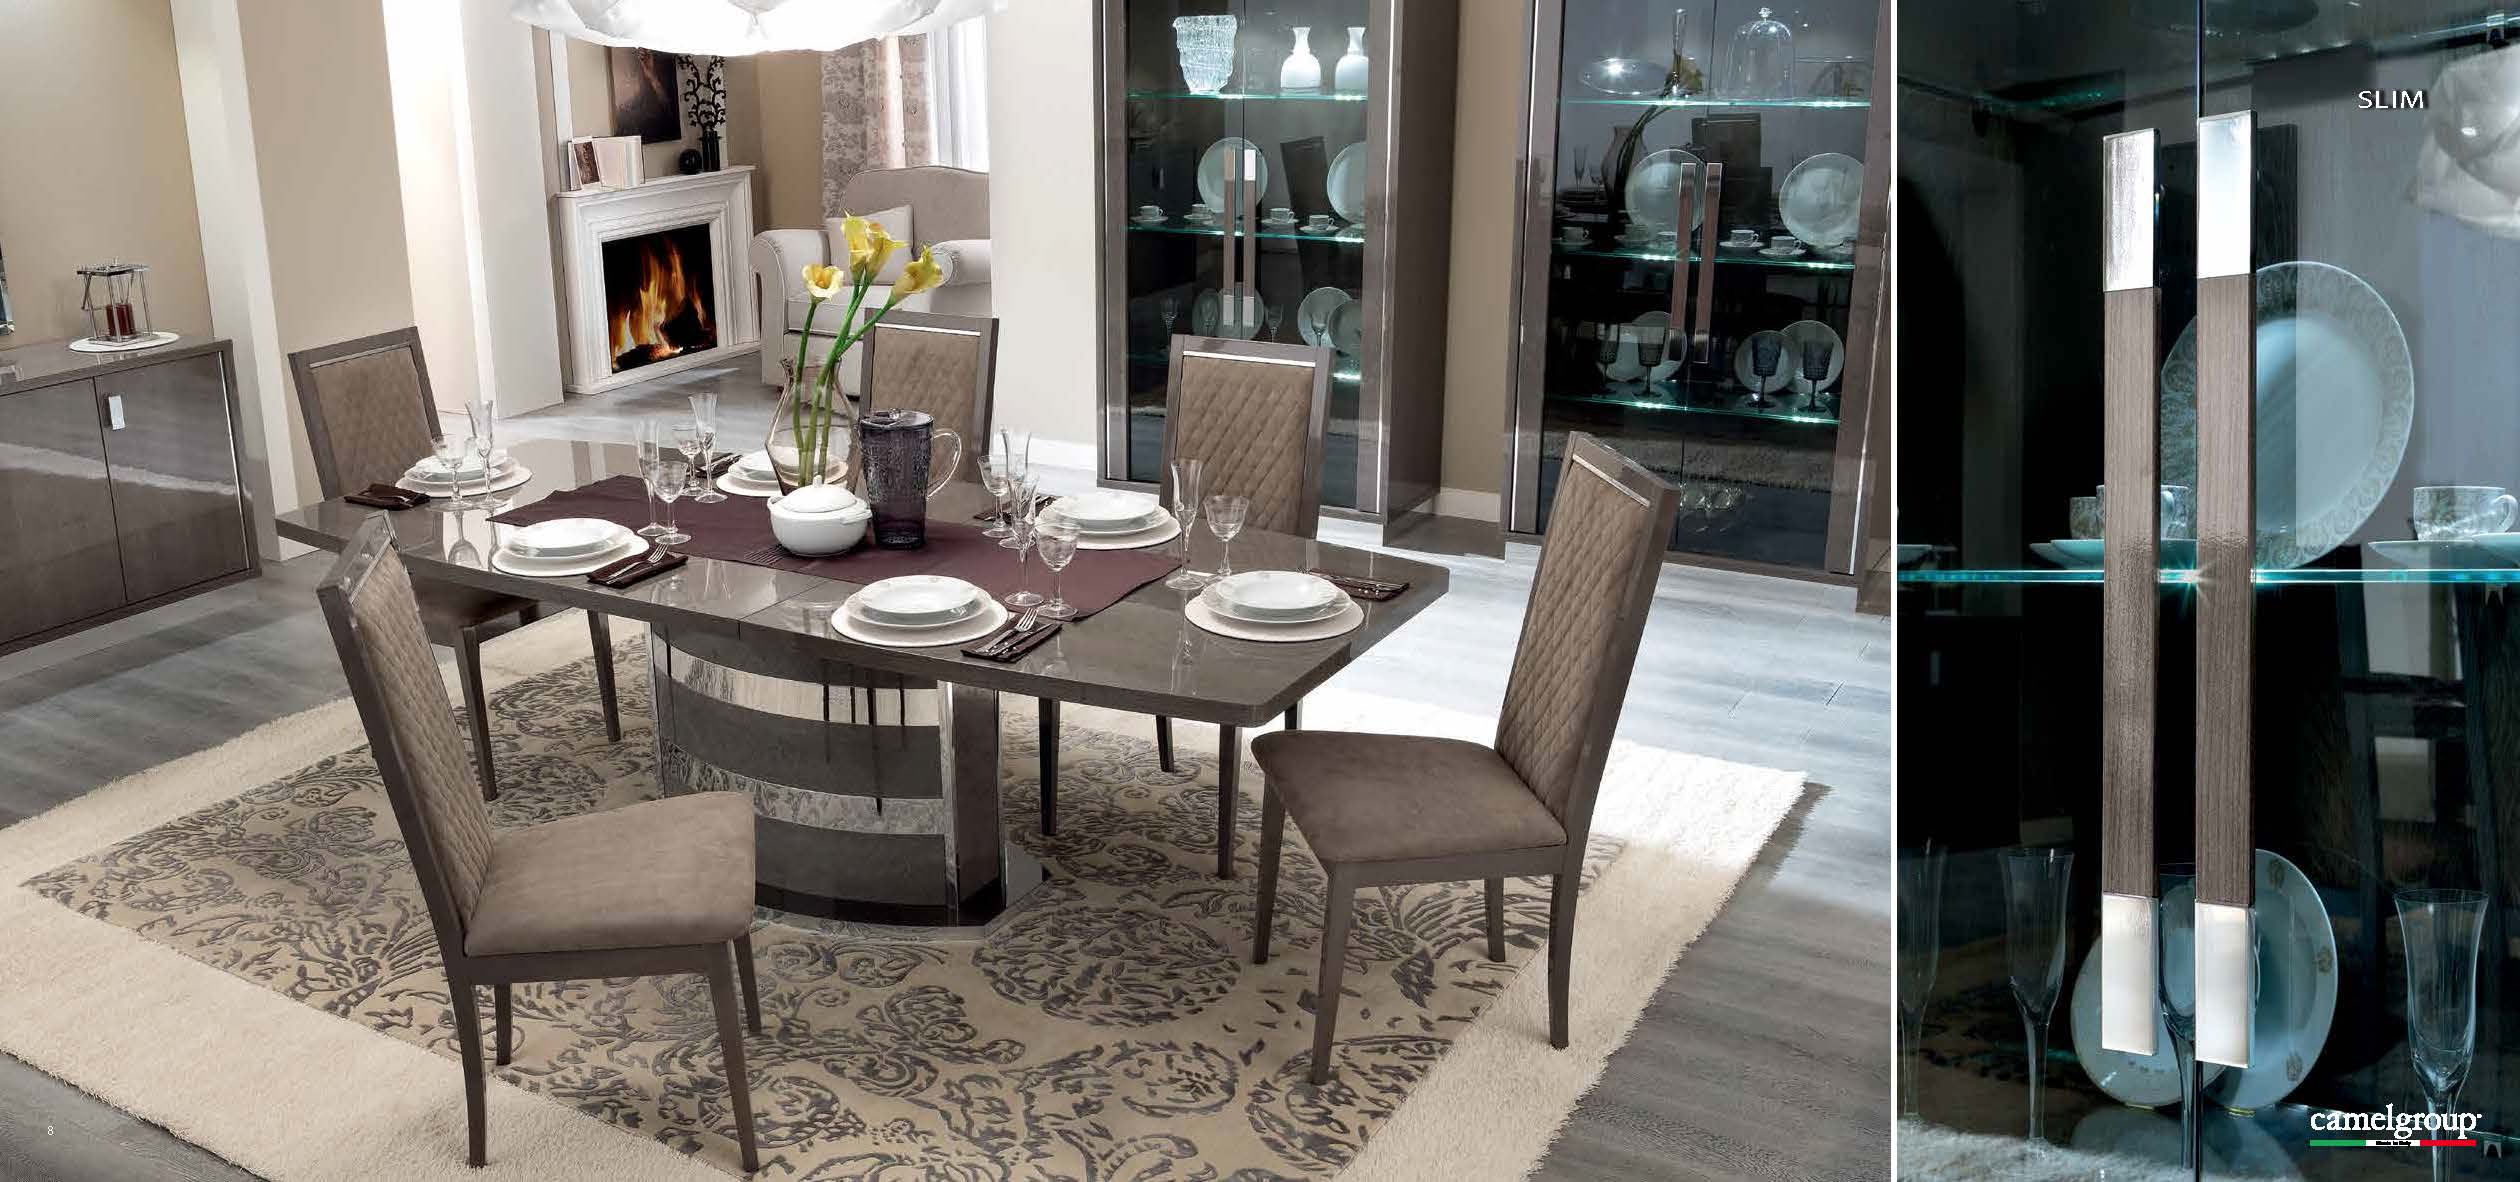 Peachy Dining Room Furniture Modern Dining Room Sets Platinum Slim Home Interior And Landscaping Ponolsignezvosmurscom